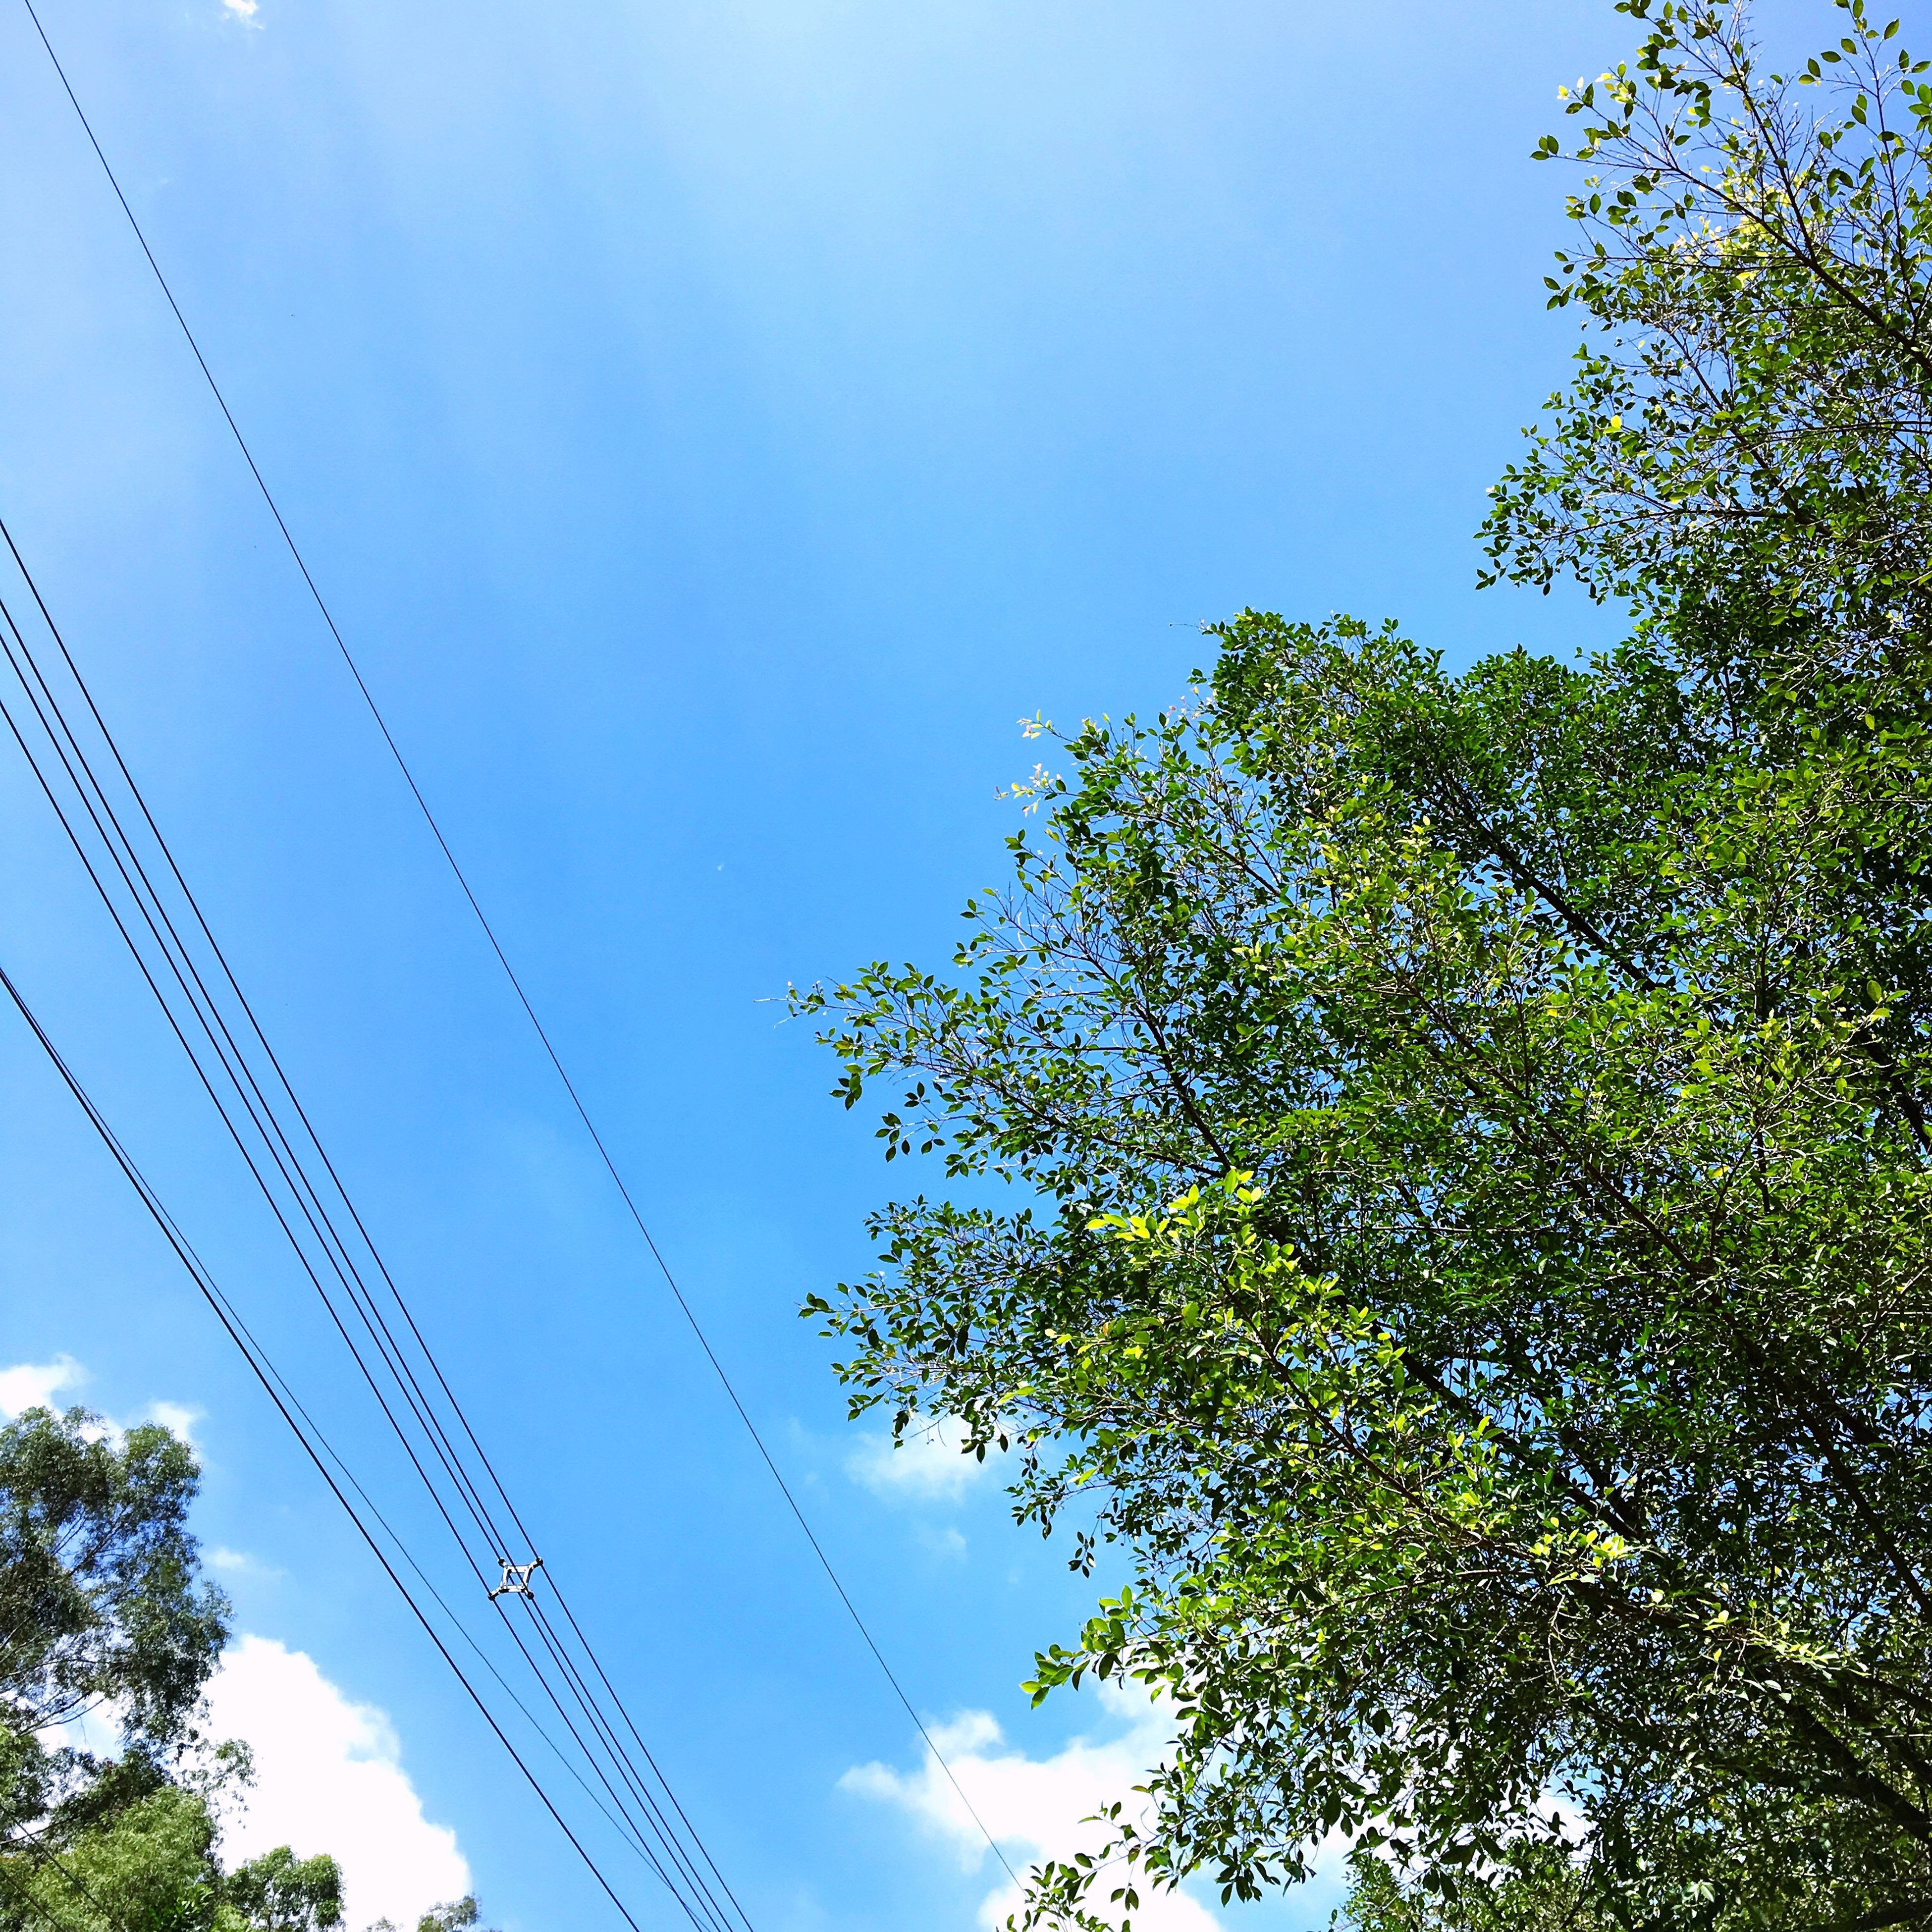 tree, low angle view, blue, clear sky, growth, day, branch, nature, sky, scenics, tranquility, high section, tranquil scene, beauty in nature, outdoors, no people, power line, treetop, green color